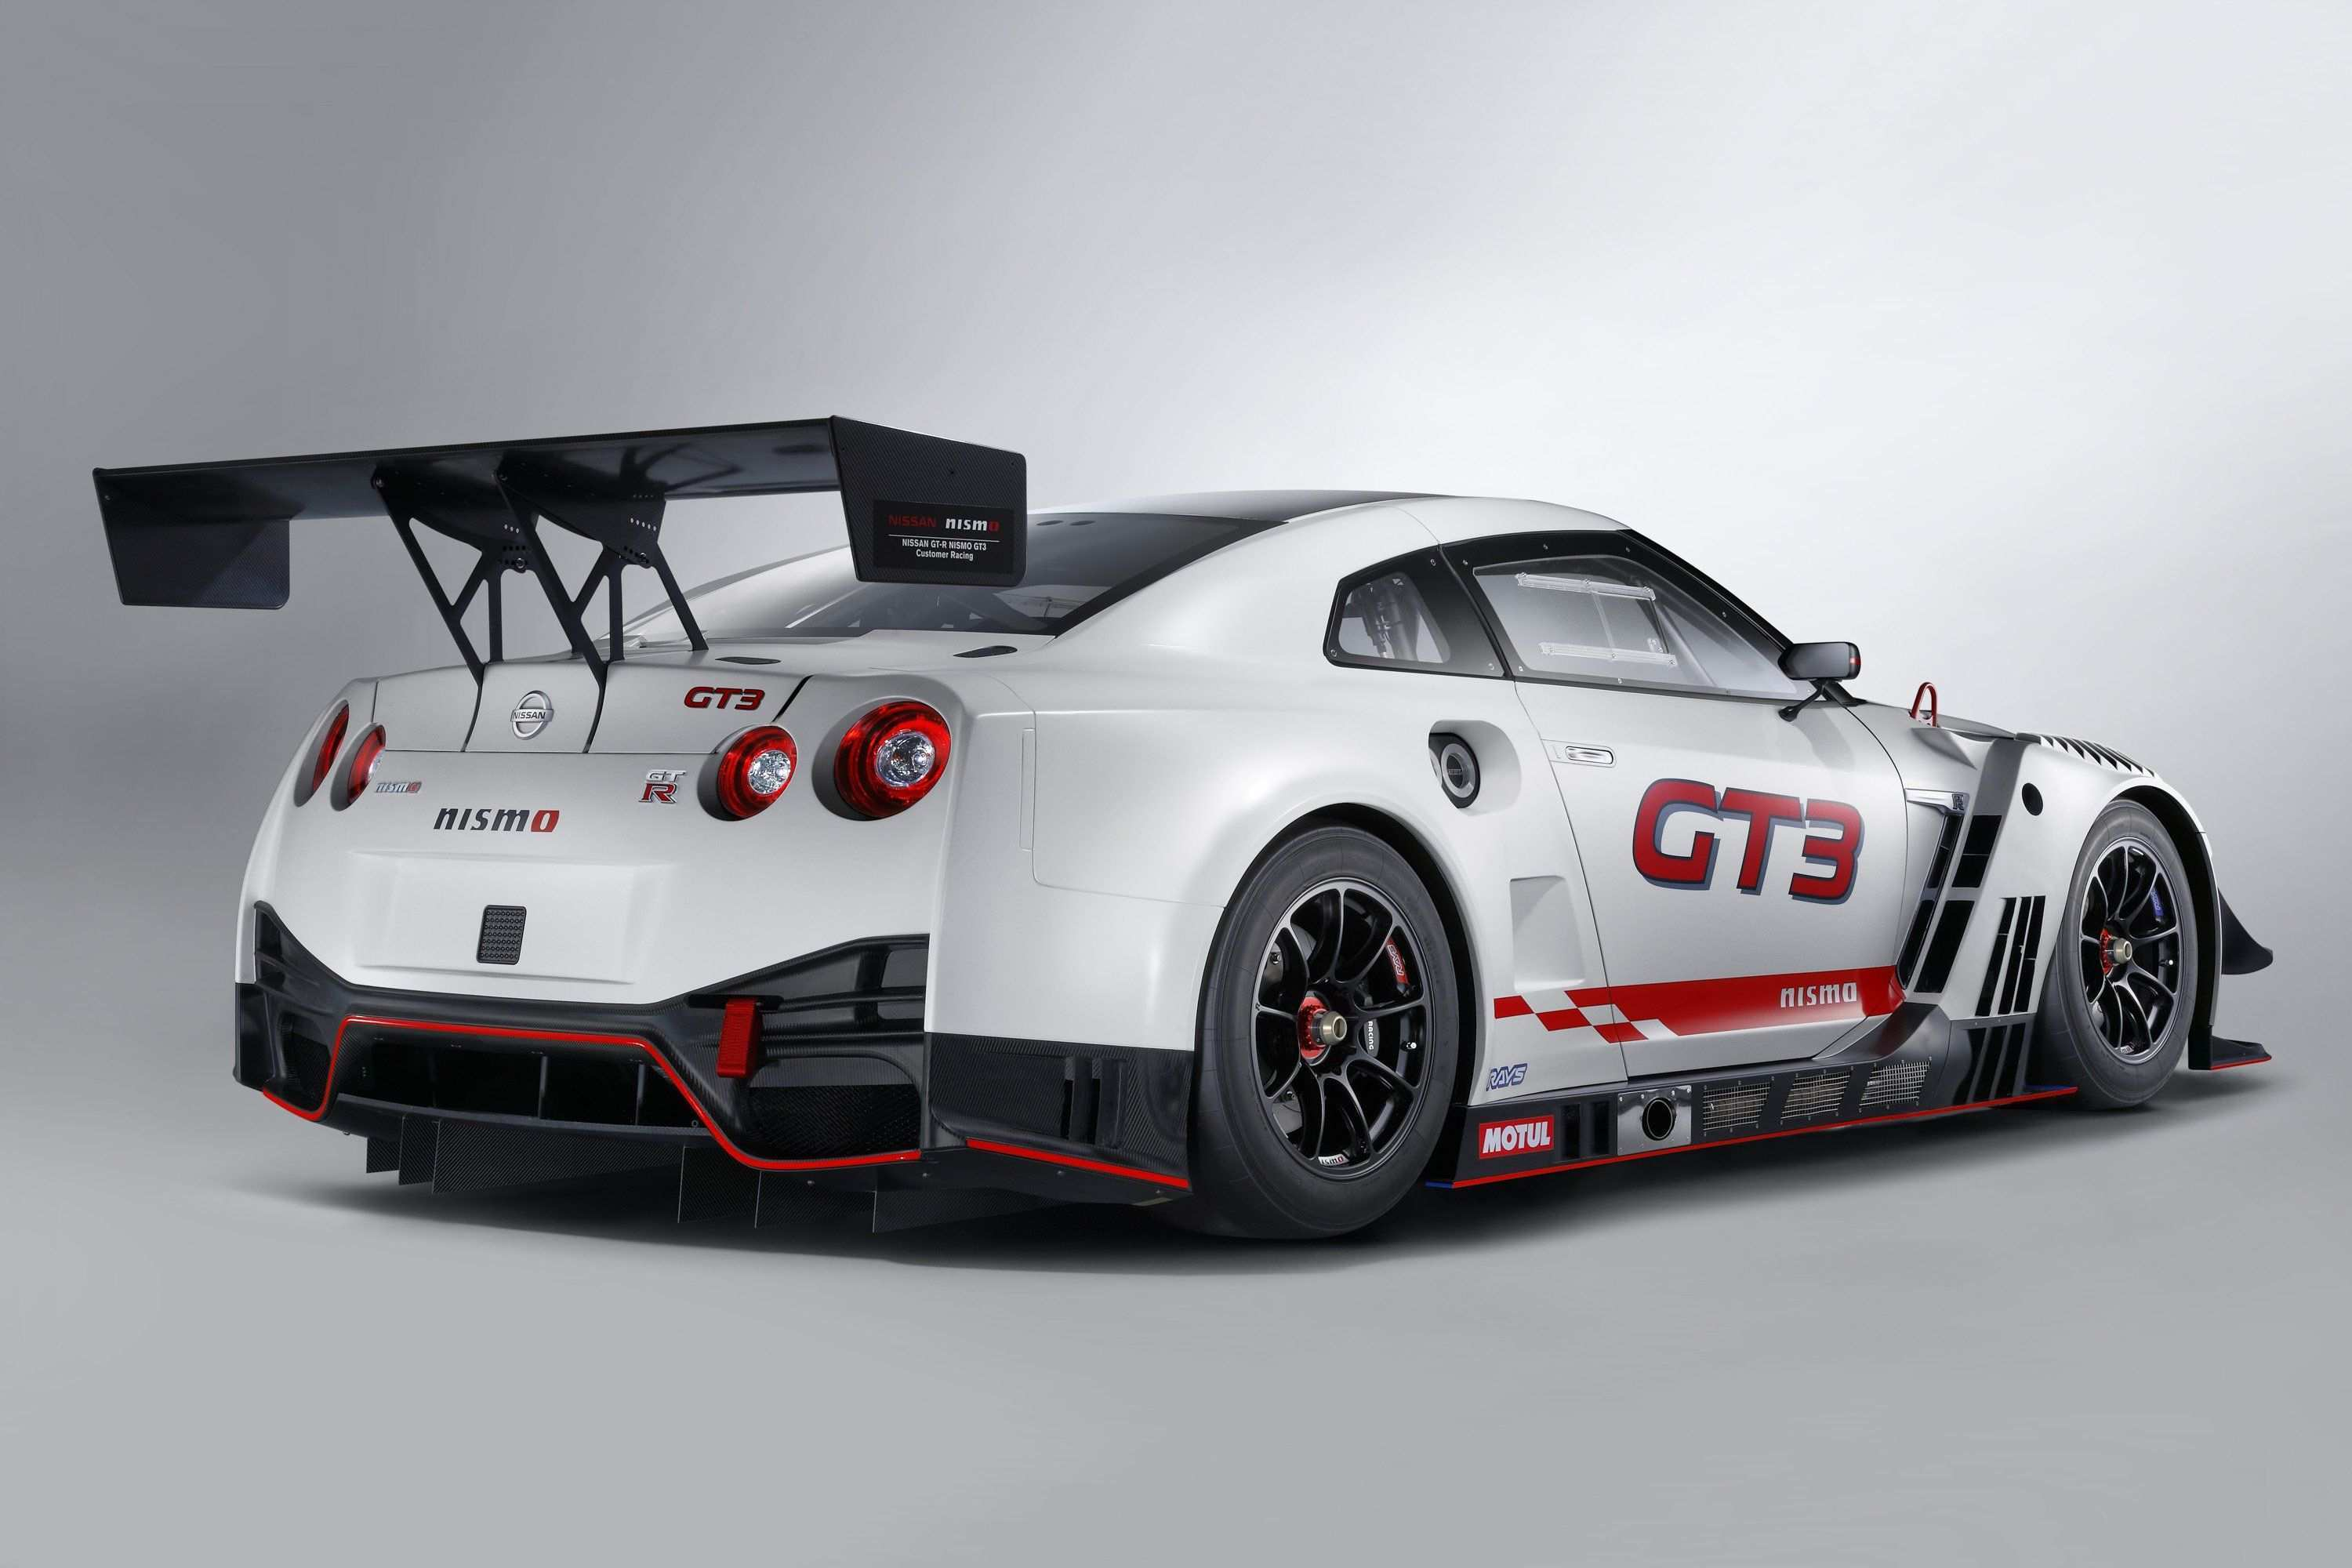 32 Concept of Best 2019 Nissan Skyline Gtr Price Model for Best 2019 Nissan Skyline Gtr Price